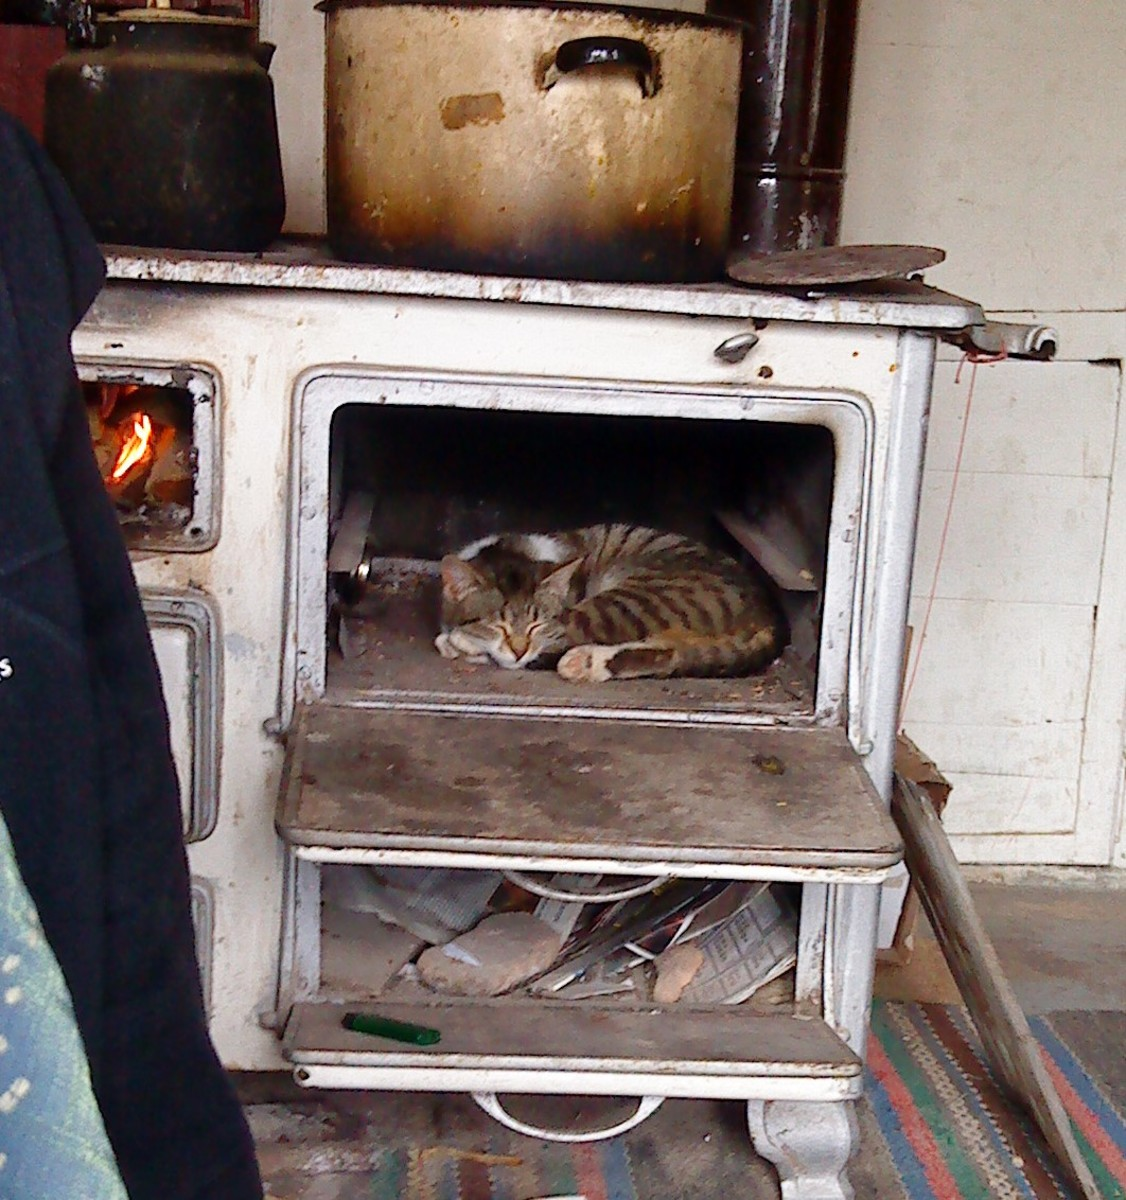 Classic well used petchka with sleeping cat.